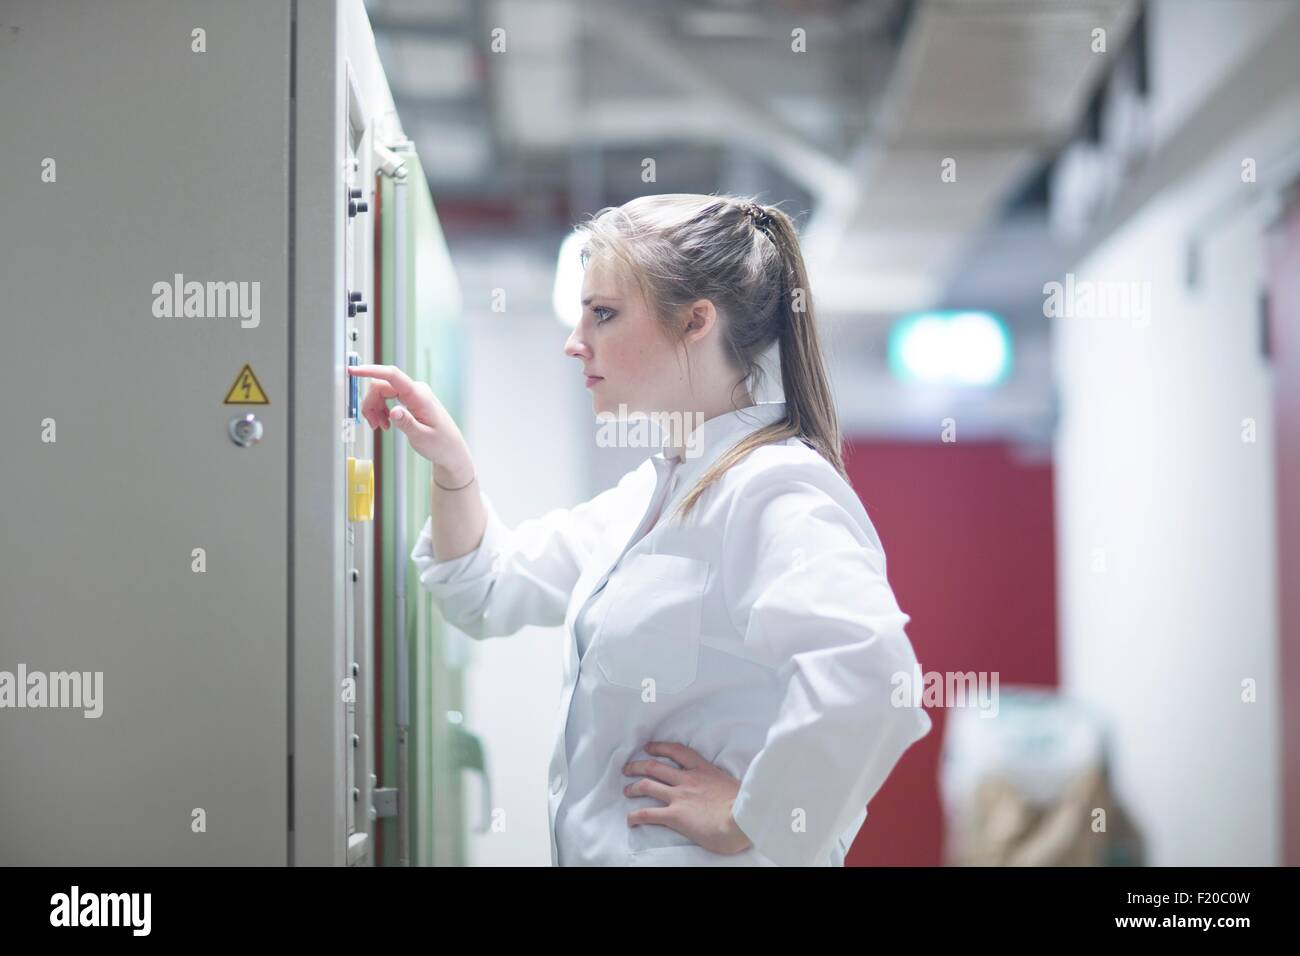 Young female scientist pressing button in technical room - Stock Image